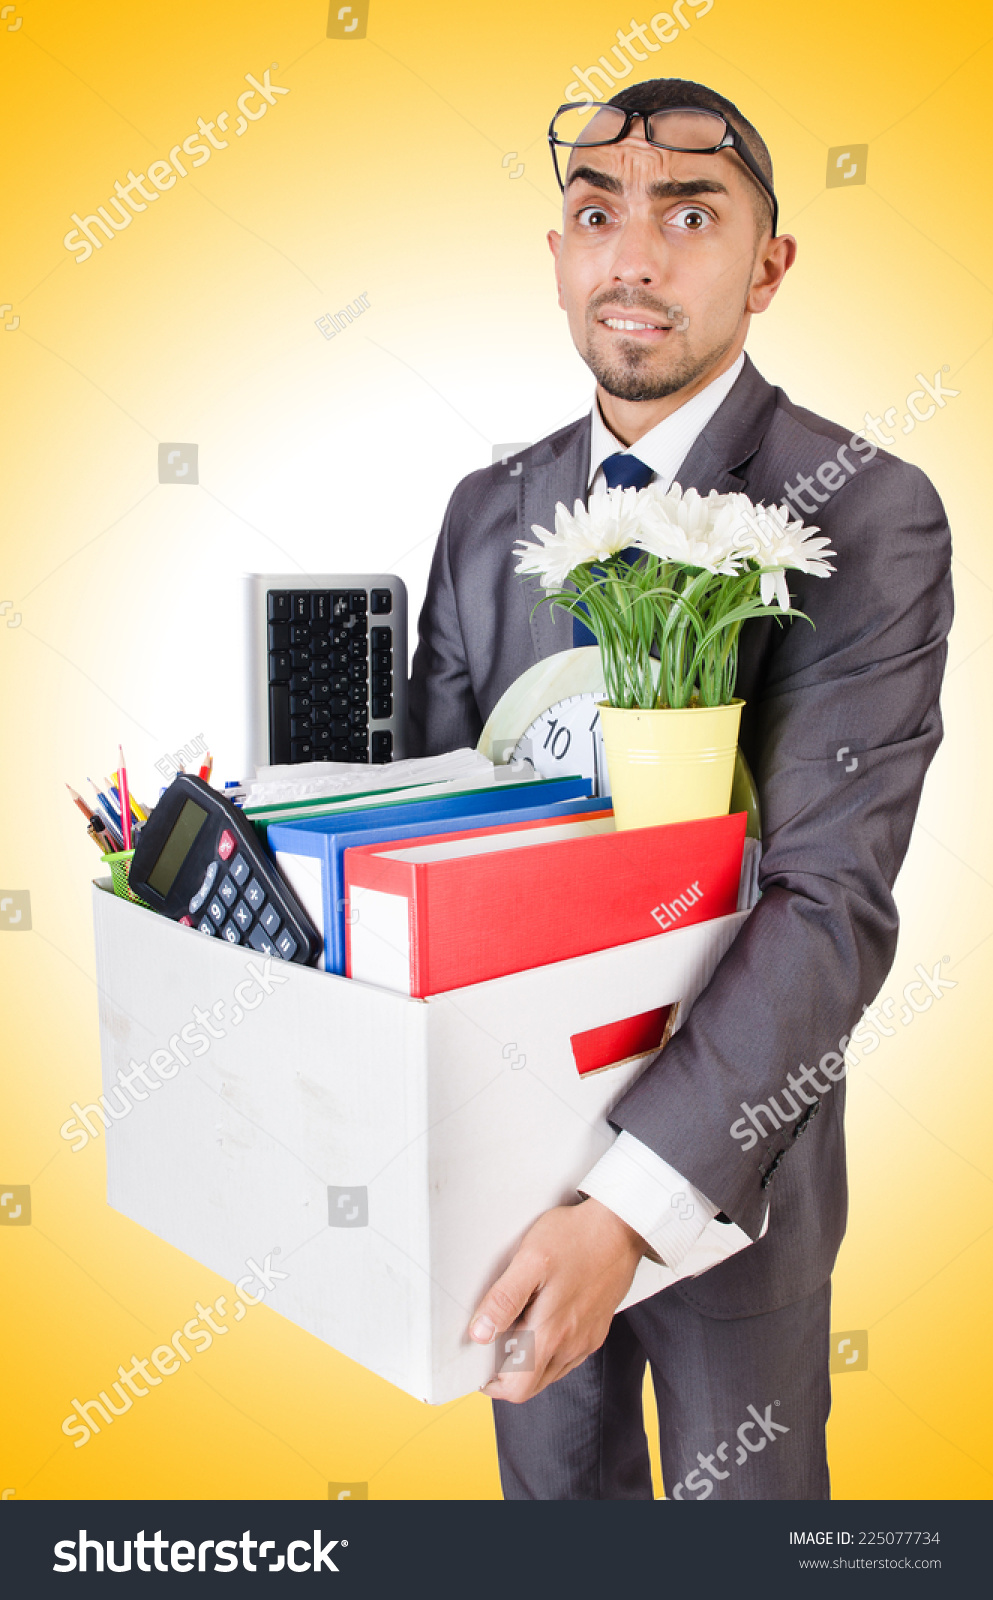 man being fired box personal stuff stock photo  man being fired box of personal stuff